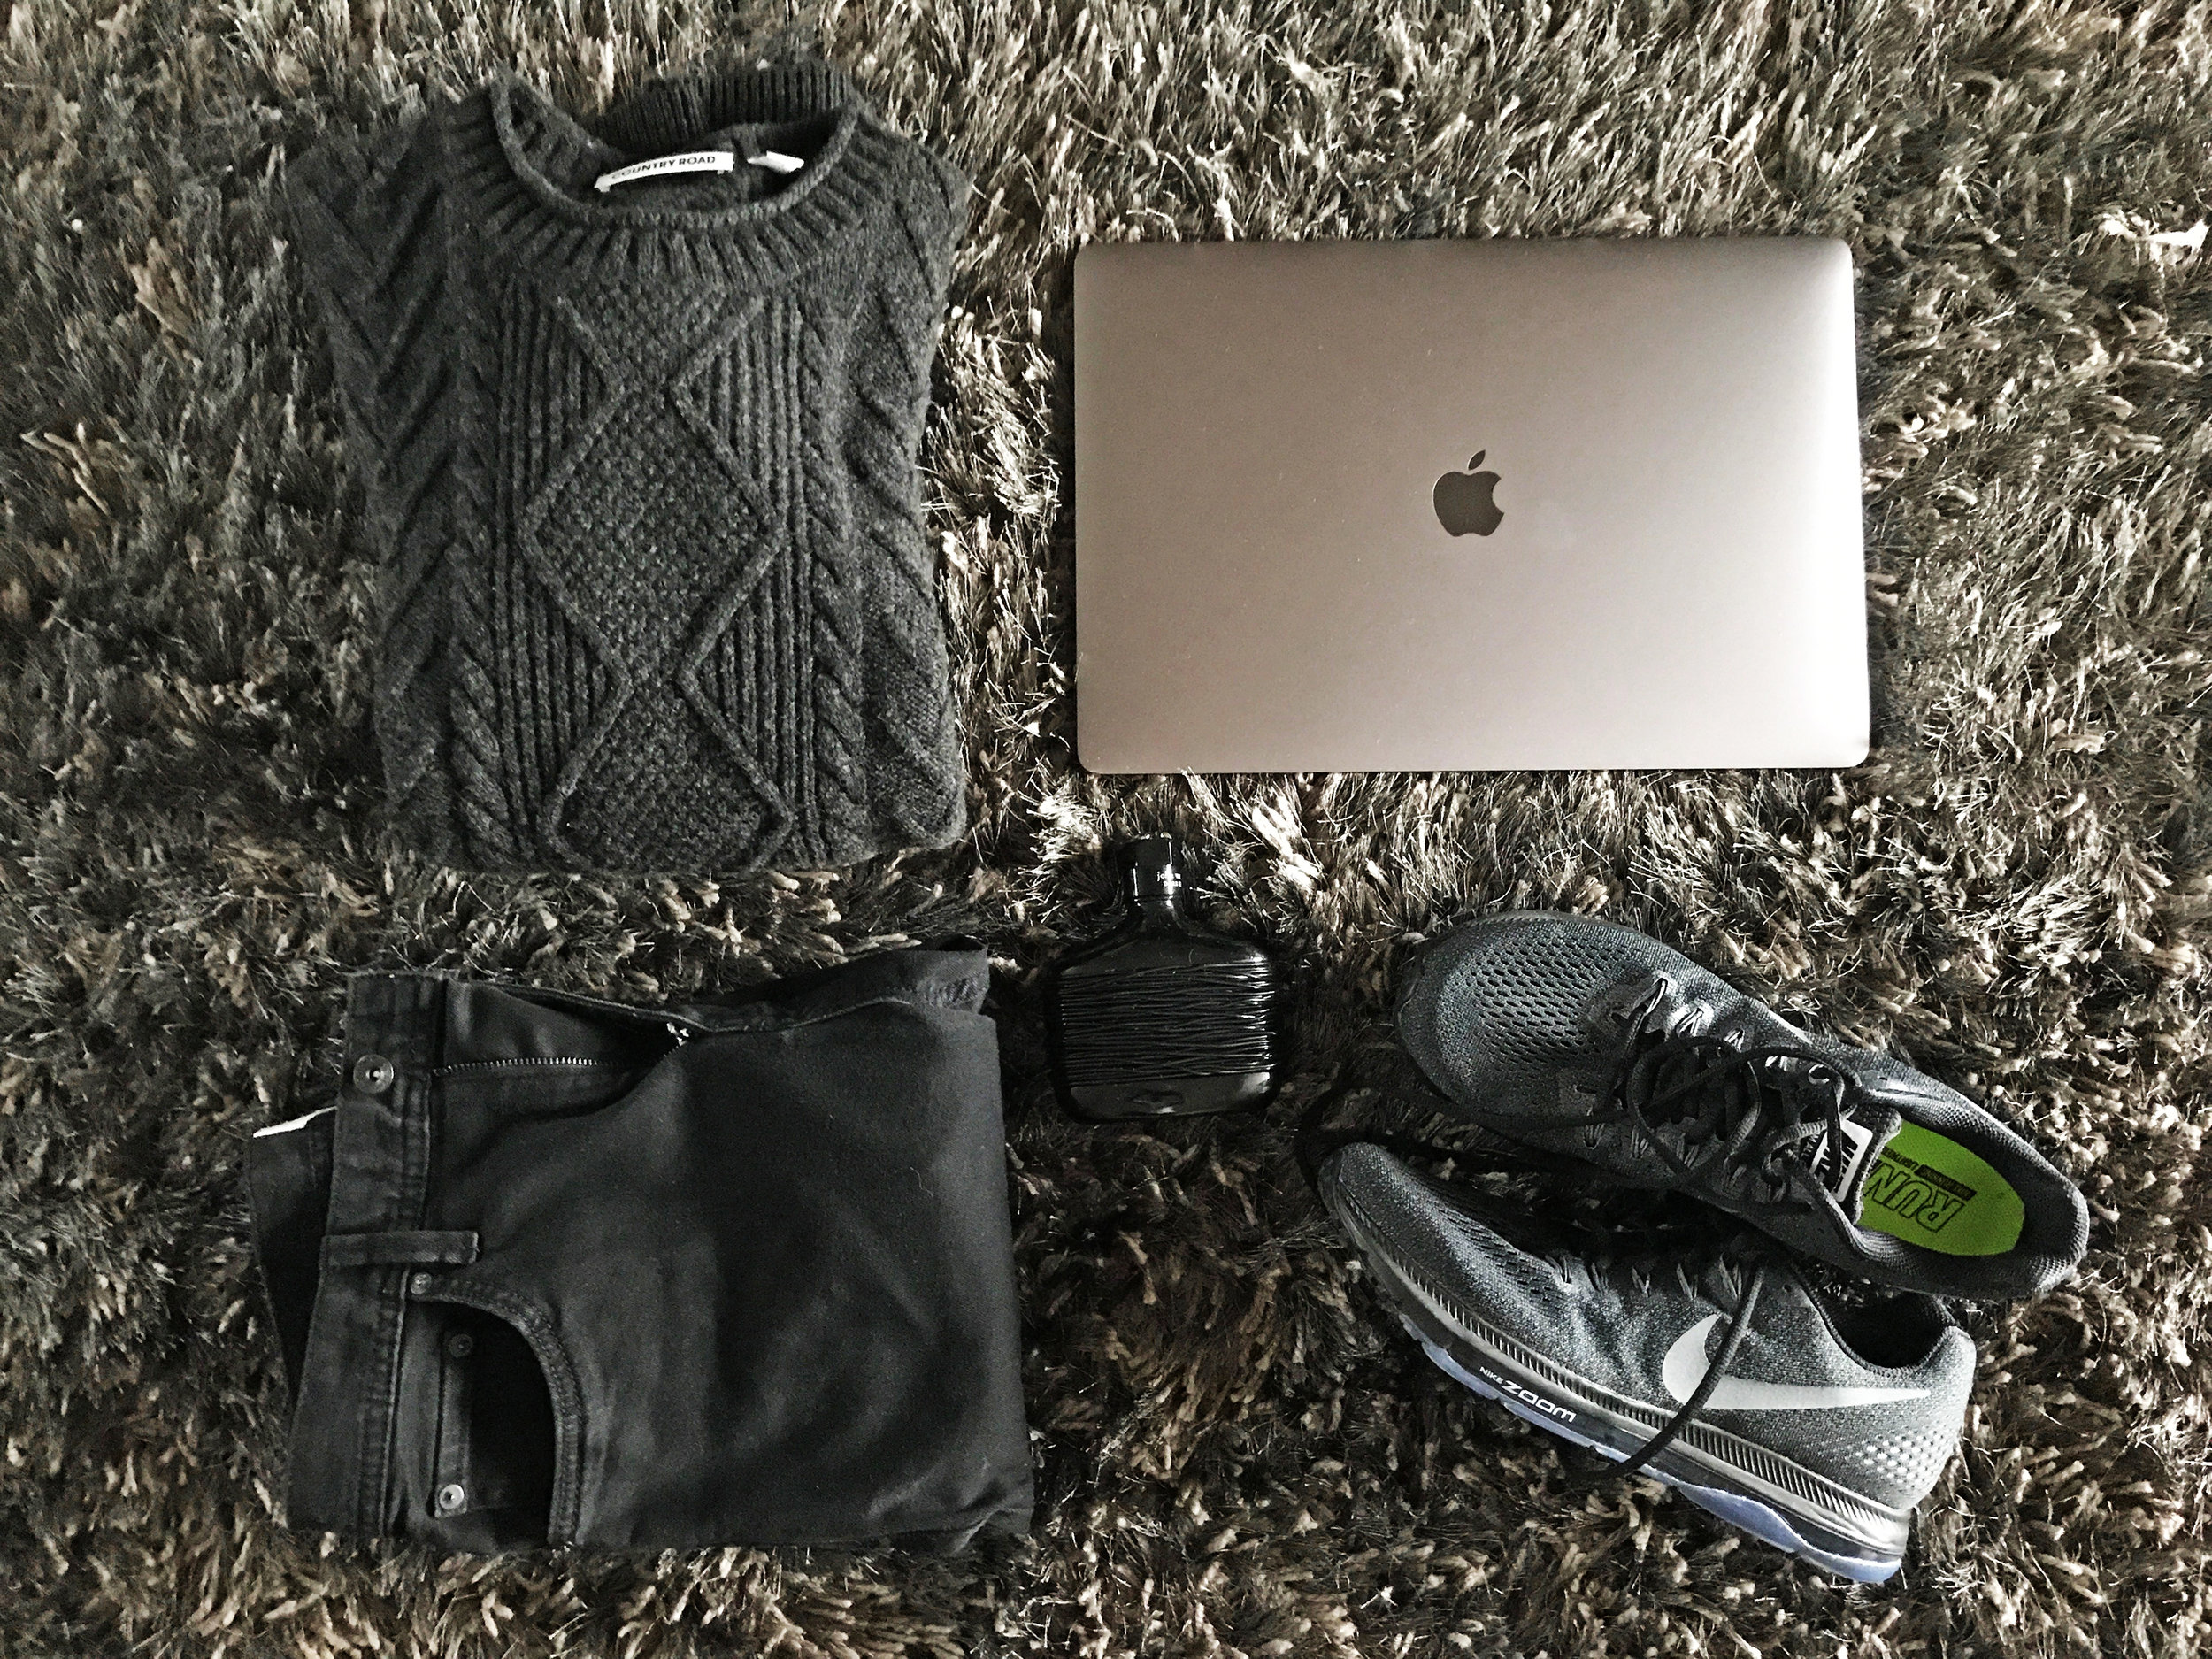 Country Road  Wool Cable Knit Crew in black; the new  MacBook Pro  15-inch (space grey which is almost black in person lol) with Touch Bar & Touch ID;  Nike Zoom All Out Low  in black/anthracite;  John Varvatos Dark Rebel  cologne;   Country Road  Slim Tapered Black Jean;  Kmart shag-carpet  in black and silver.